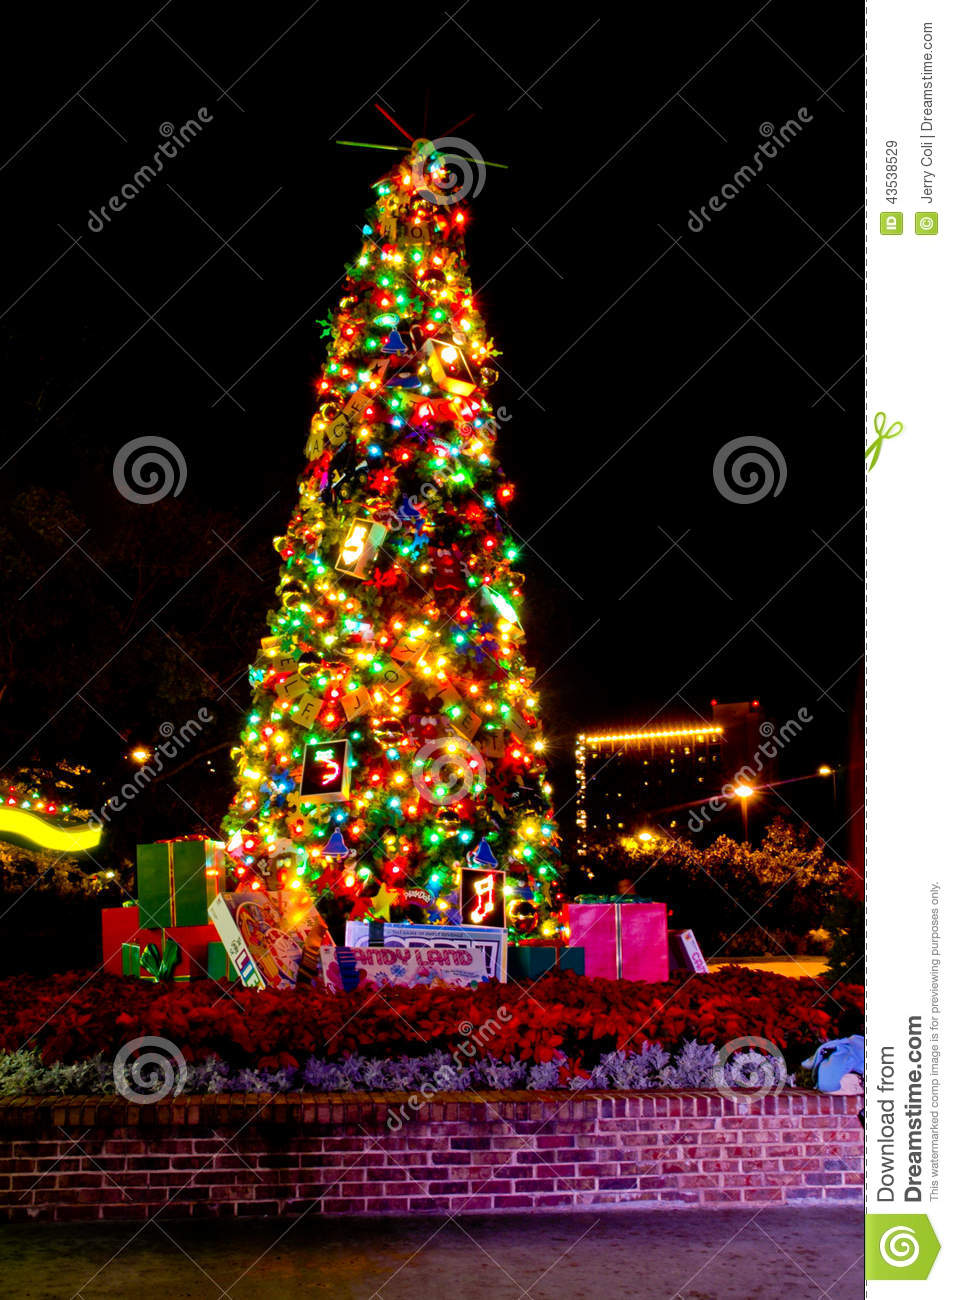 Christmas In Downtown Disney Editorial Stock Image